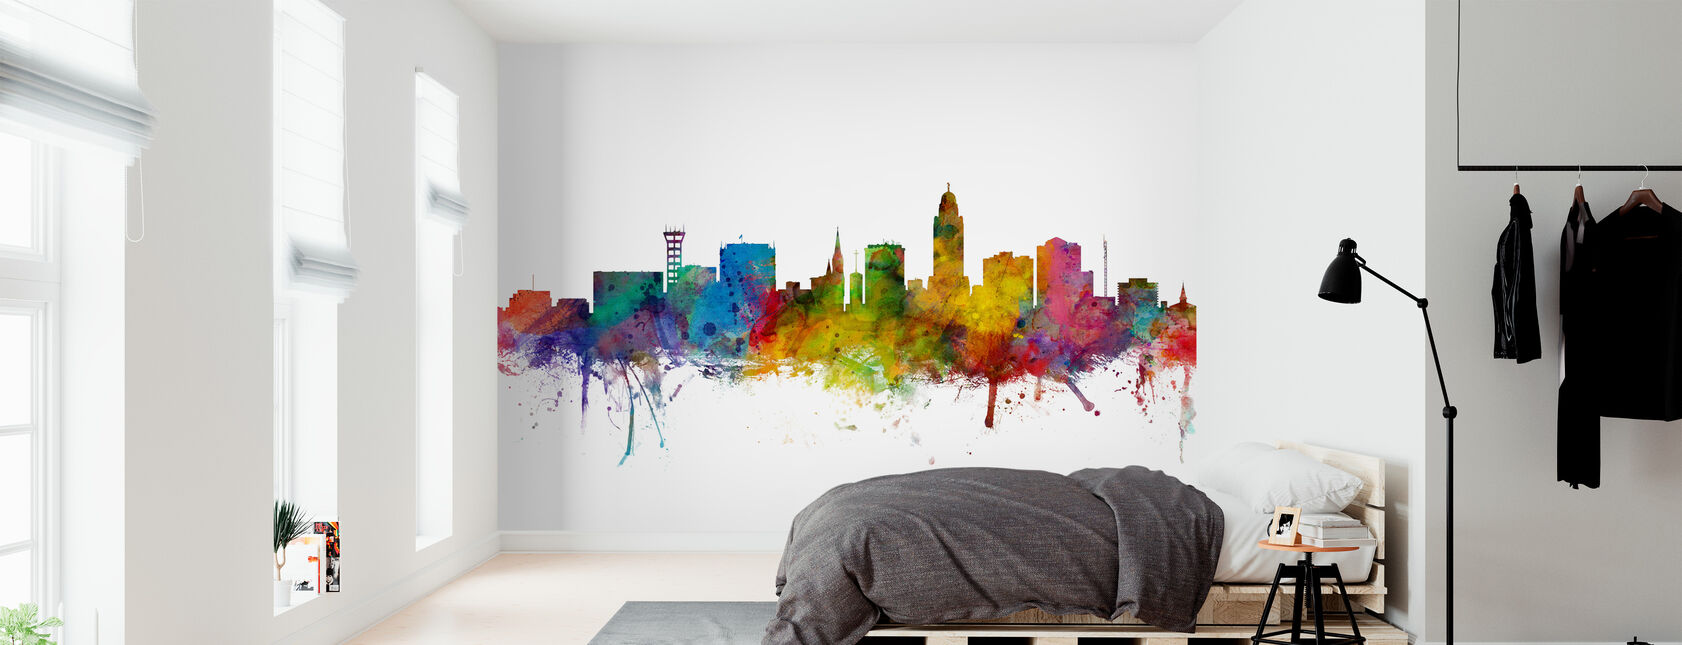 Lincoln Nebraska Skyline - Wallpaper - Bedroom